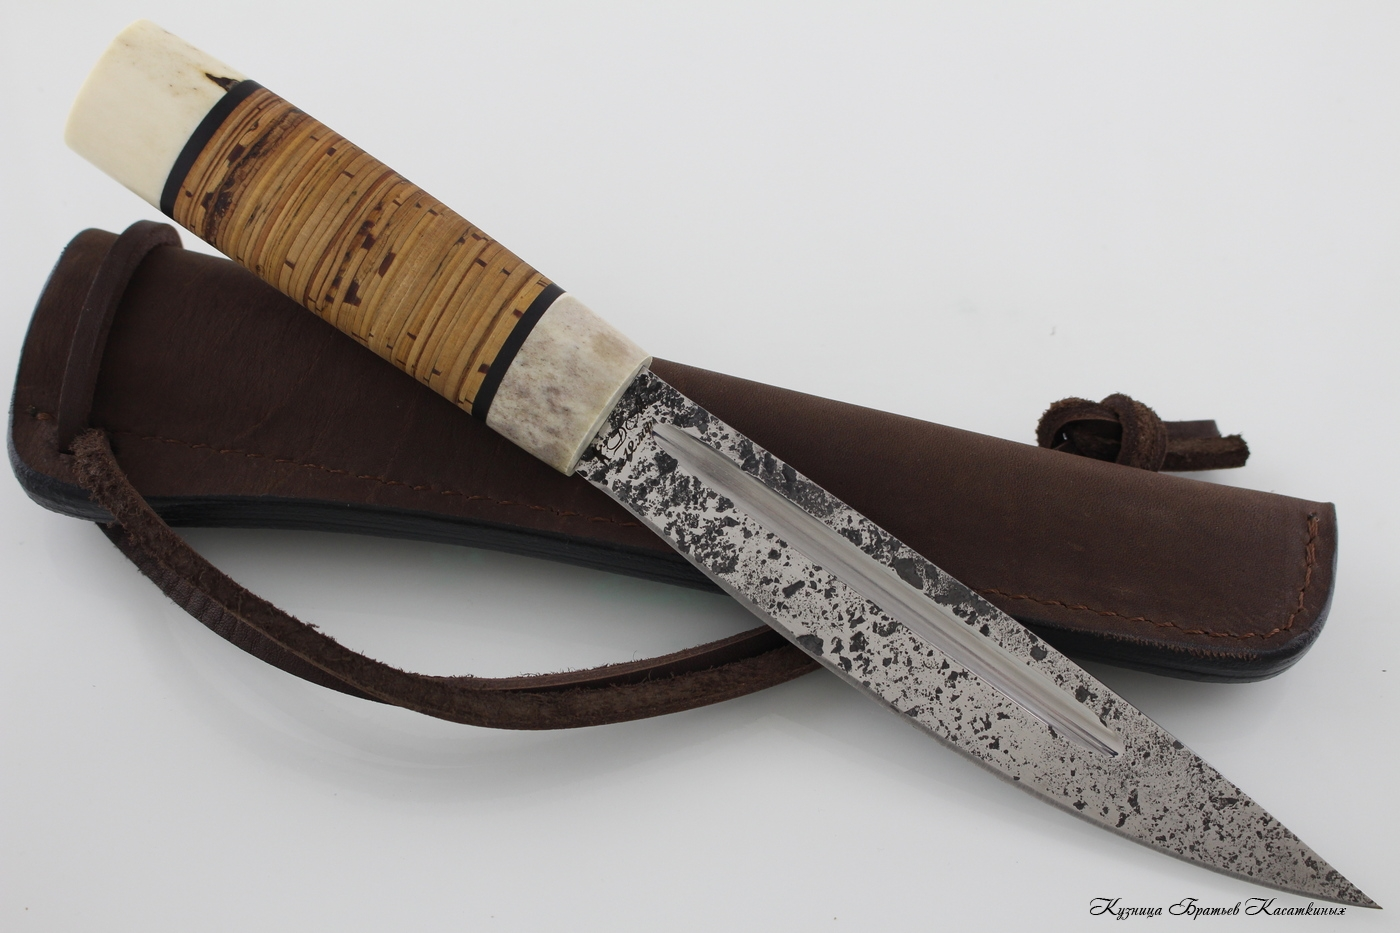 Yakutian knife (big size). Stainless Steel 95h18. Birchbark handle